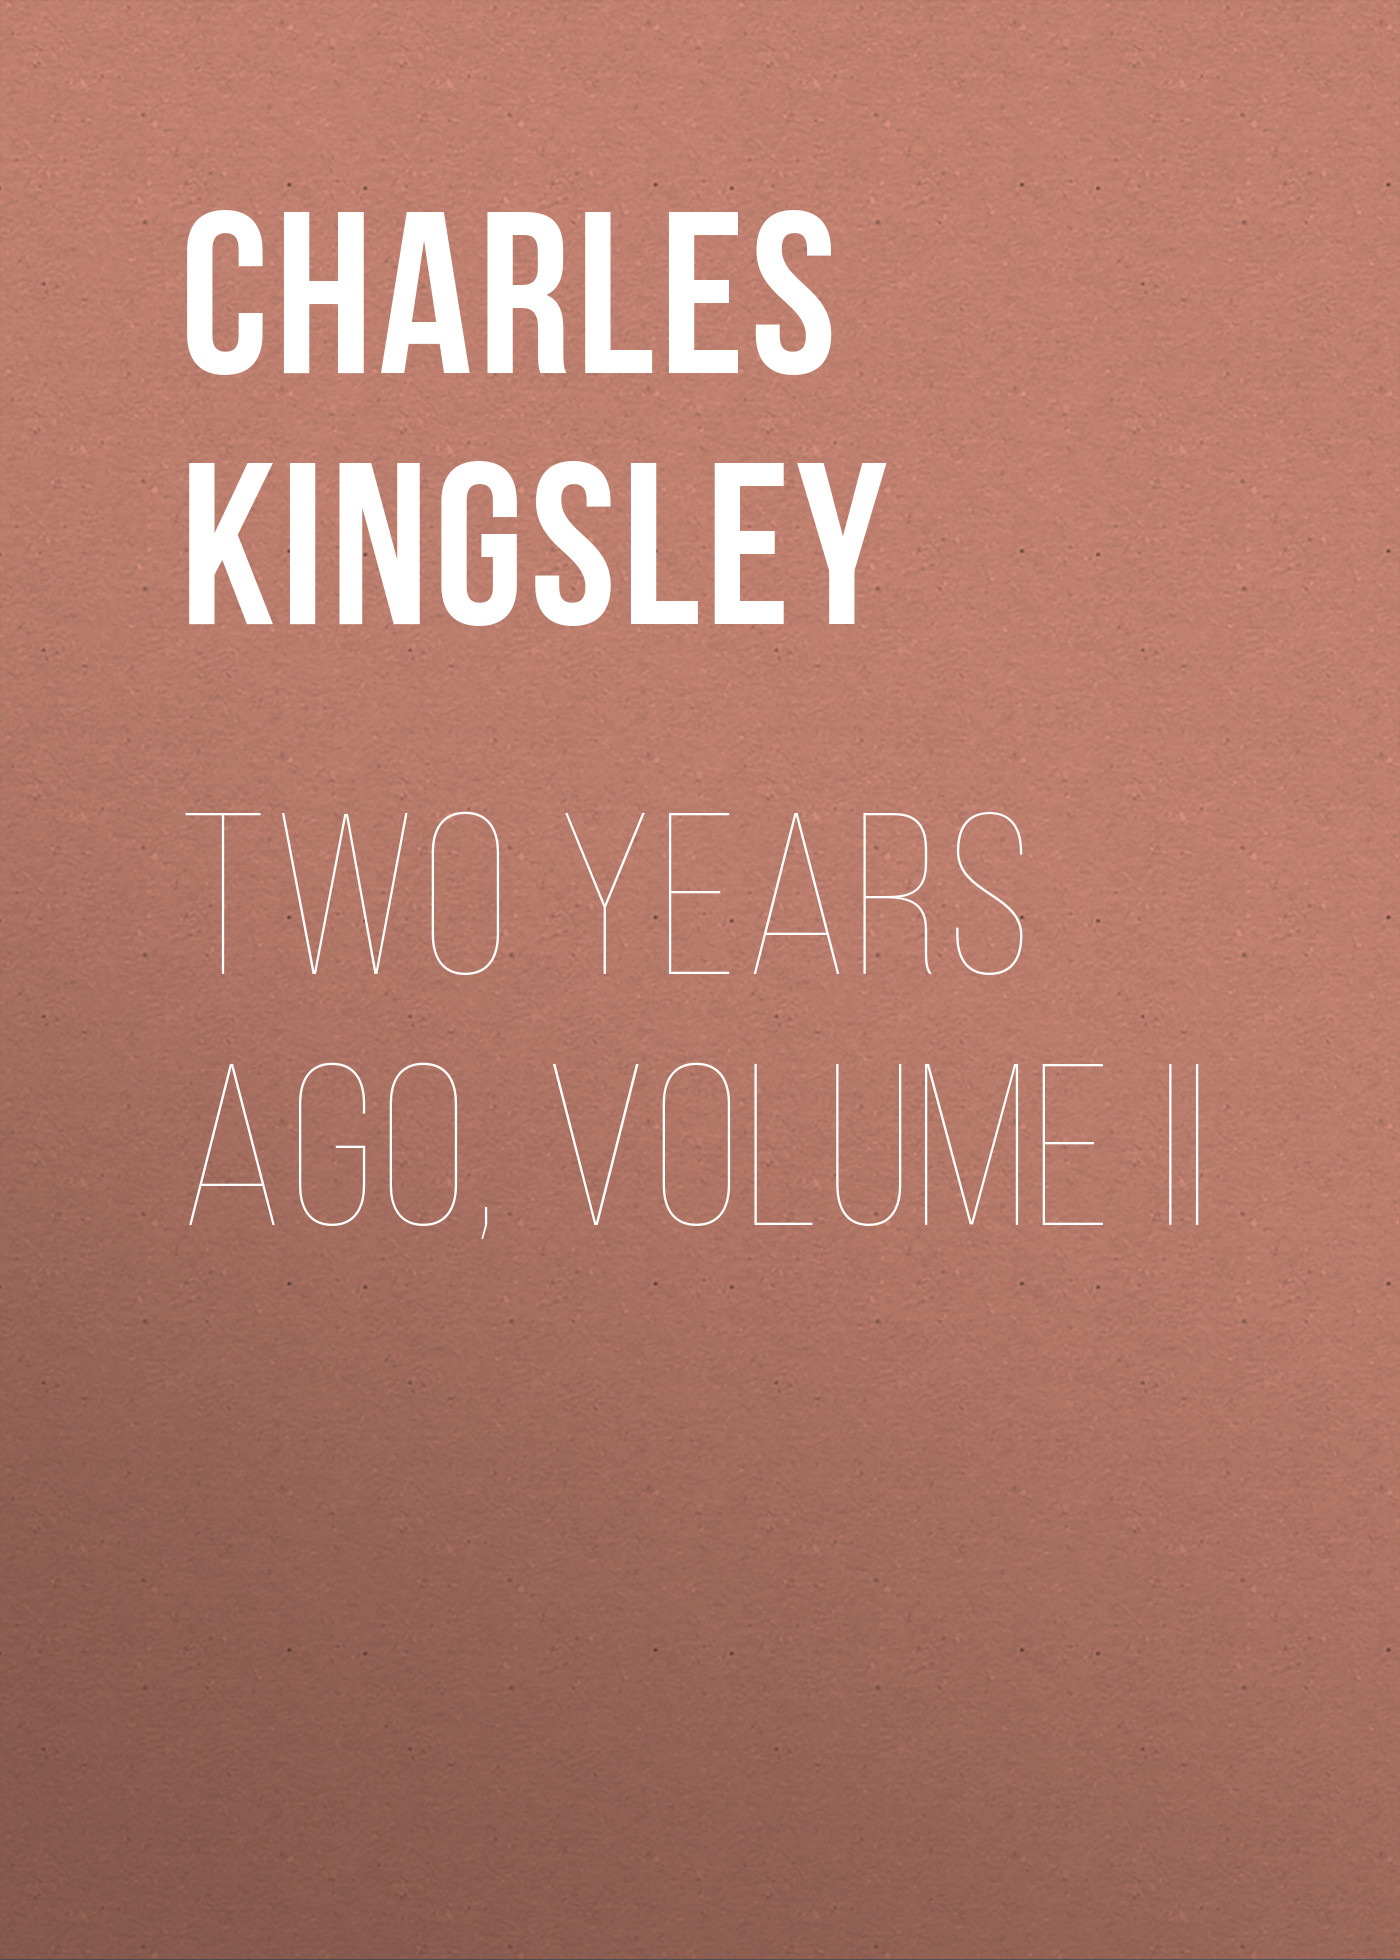 Charles Kingsley Two Years Ago, Volume II charles kingsley two years ago volume ii